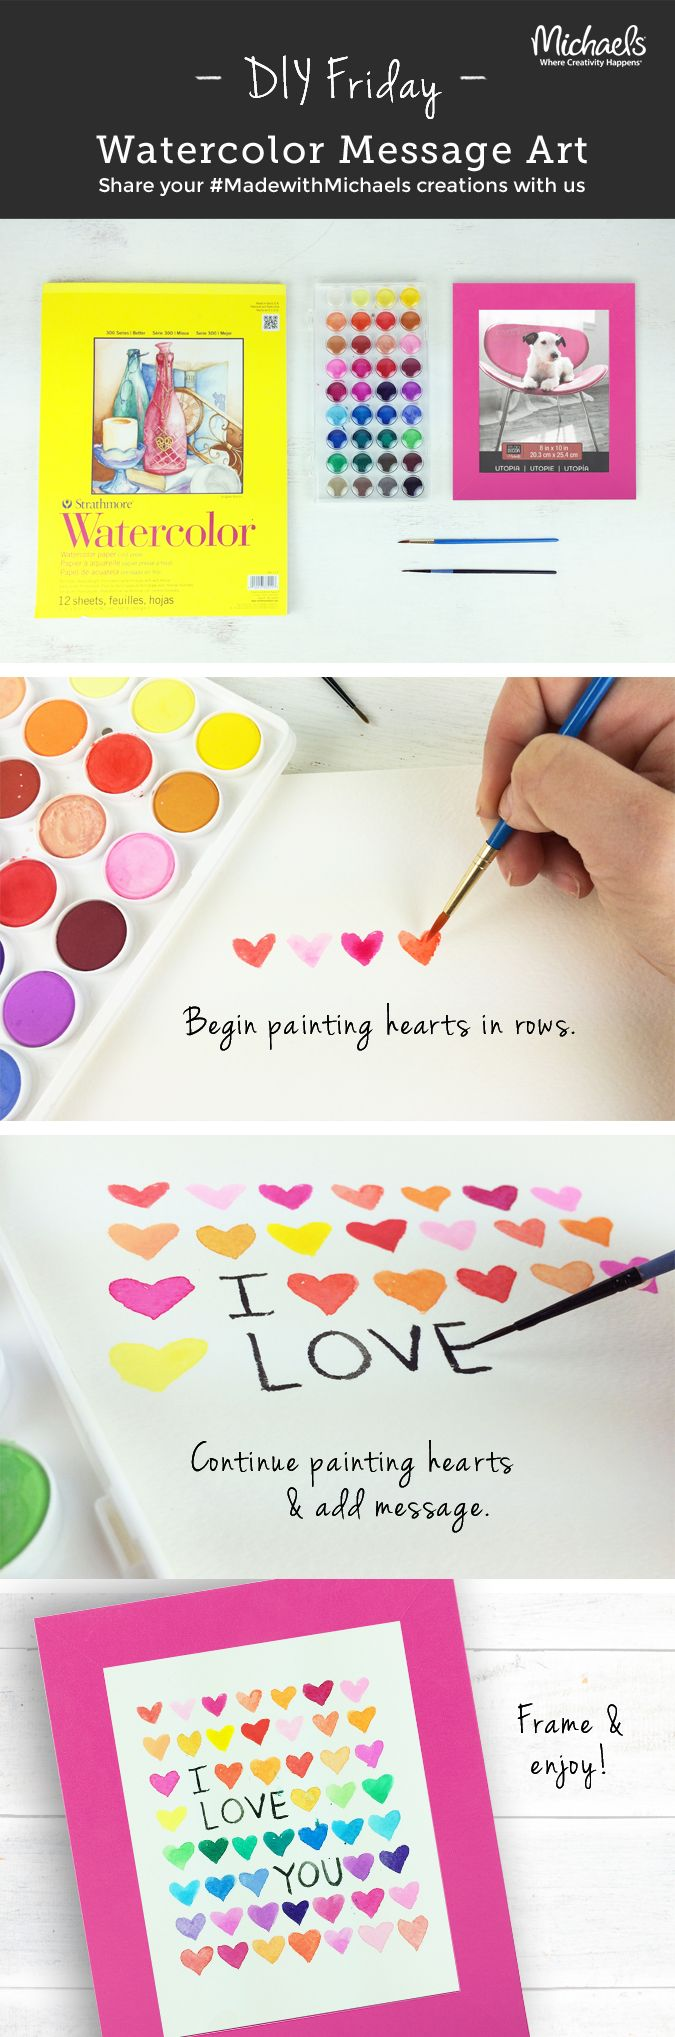 Create an easy Watercolor Message Art card or piece for the ones you love